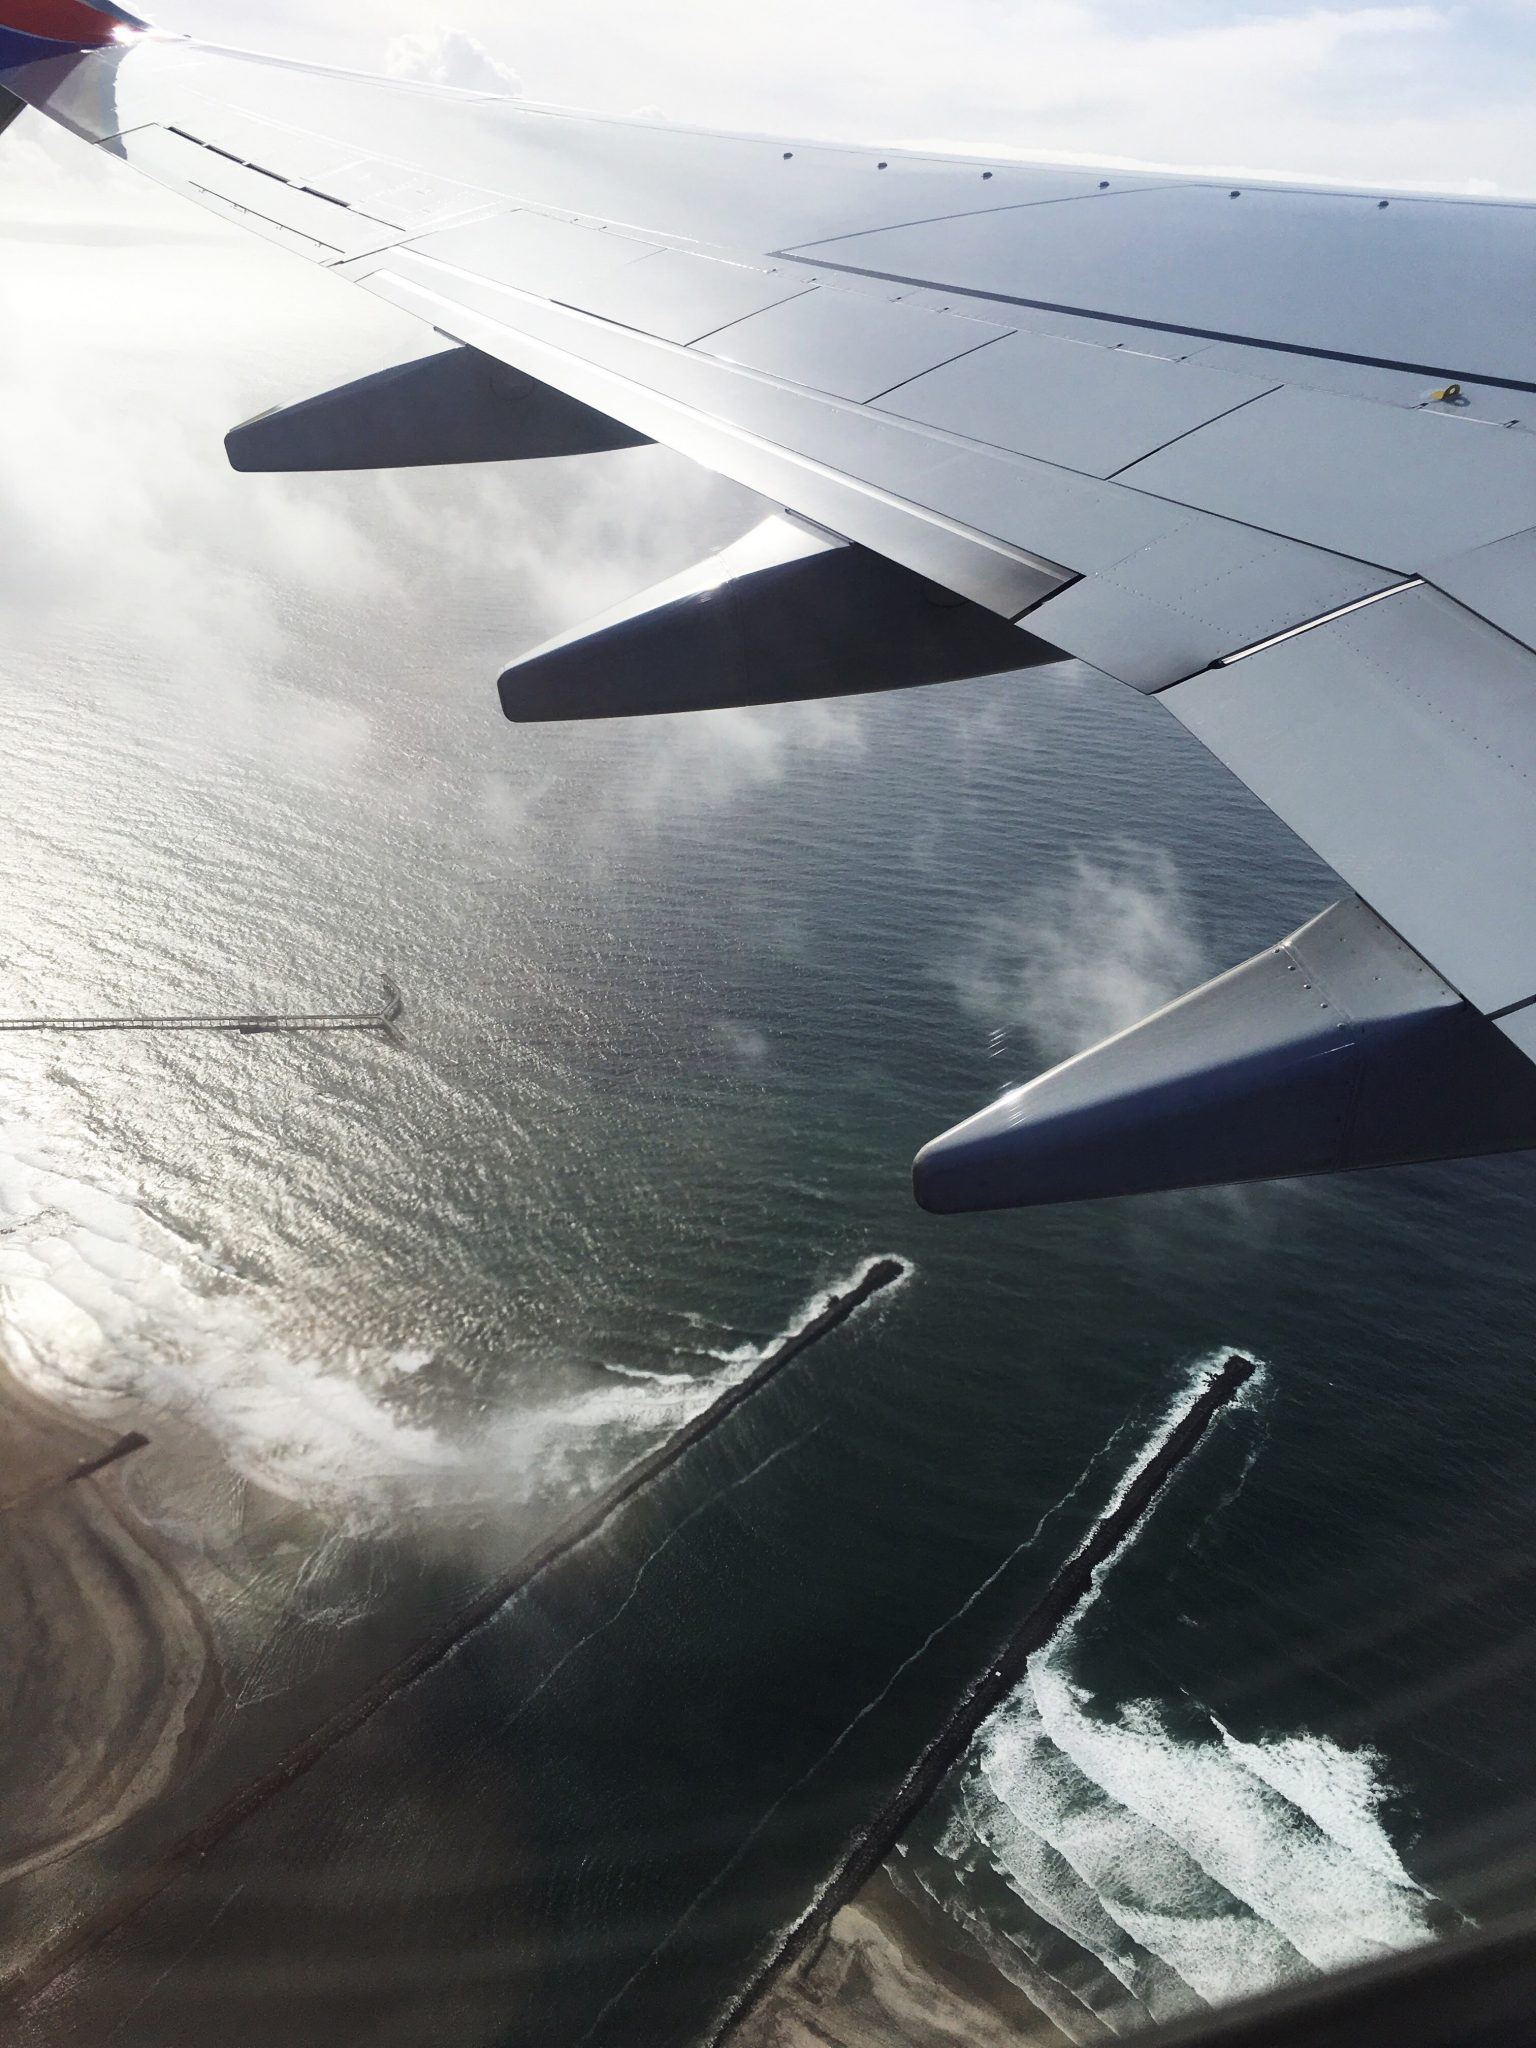 Travel Trip - Captured plane wing, flying over the Pacific Ocean near San Diego, California